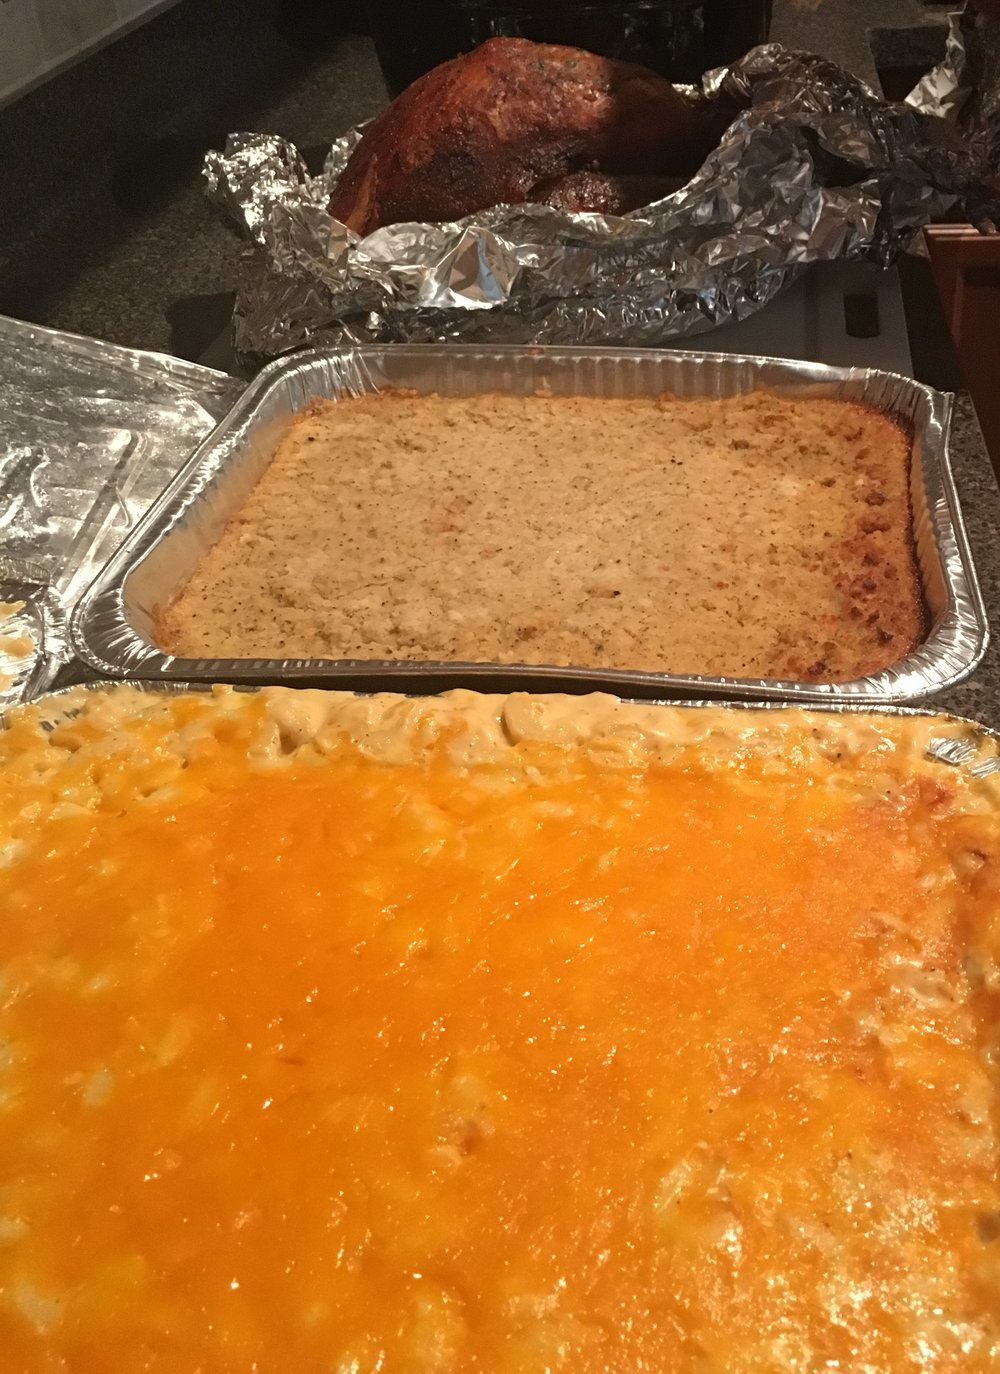 A Thanksgiving horror: 9 months pregnant and left waiting hours for food | Honeycomb Moms | My mom snapped a photo of the food we ordered from the This Is It! BBQ & Seafood in the 3500 block of Camp Creek Parkway in metro Atlanta. | Credit: Family